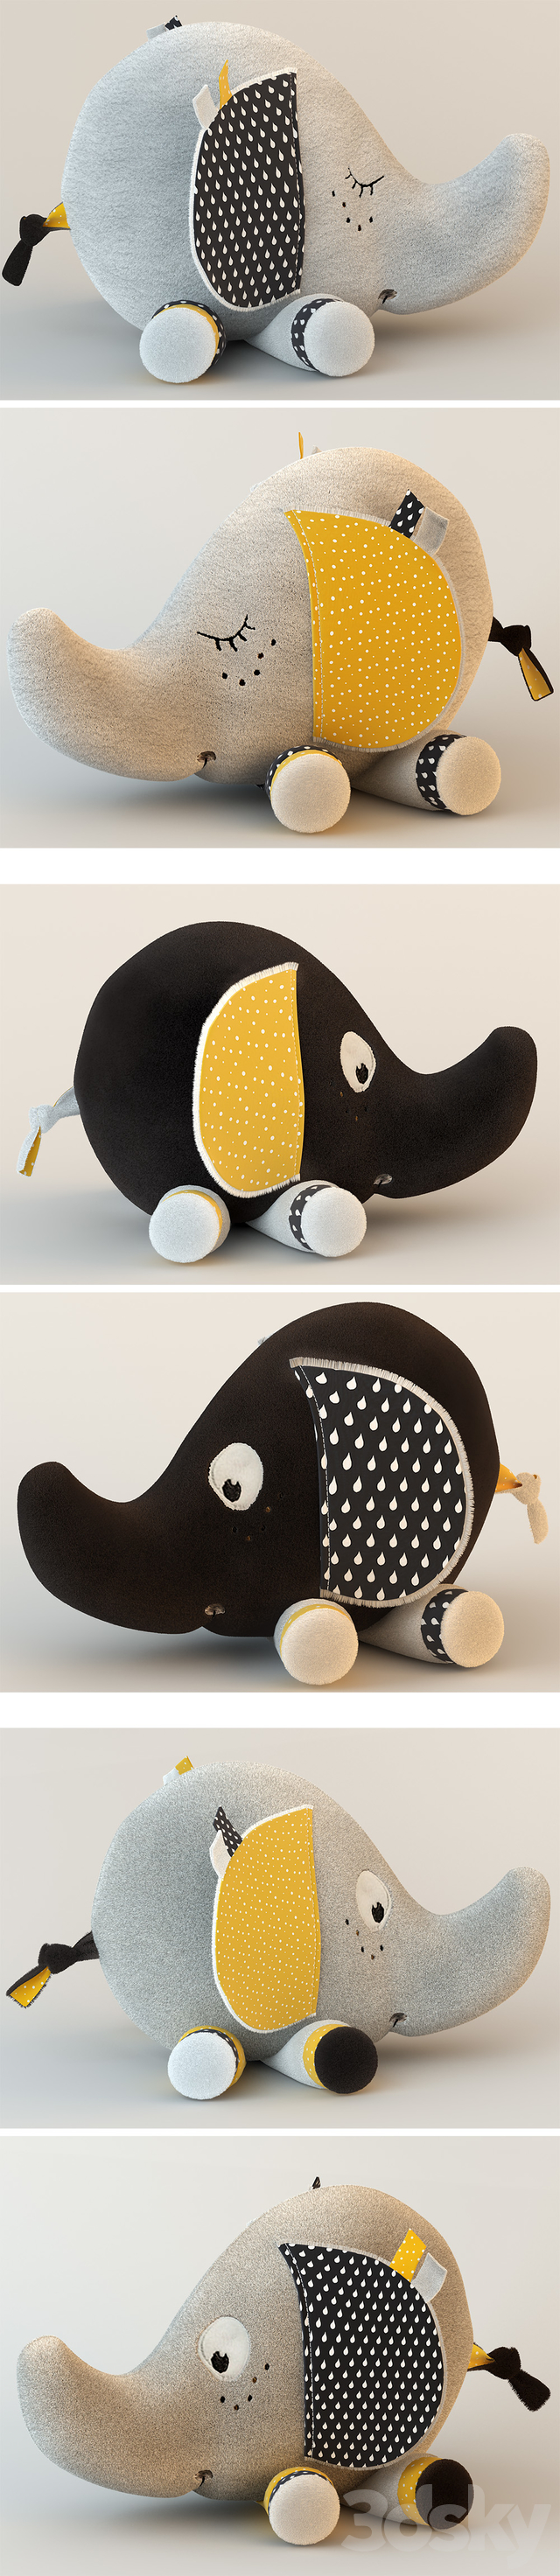 Sauthon Elephant-Toys from Babyfan collection